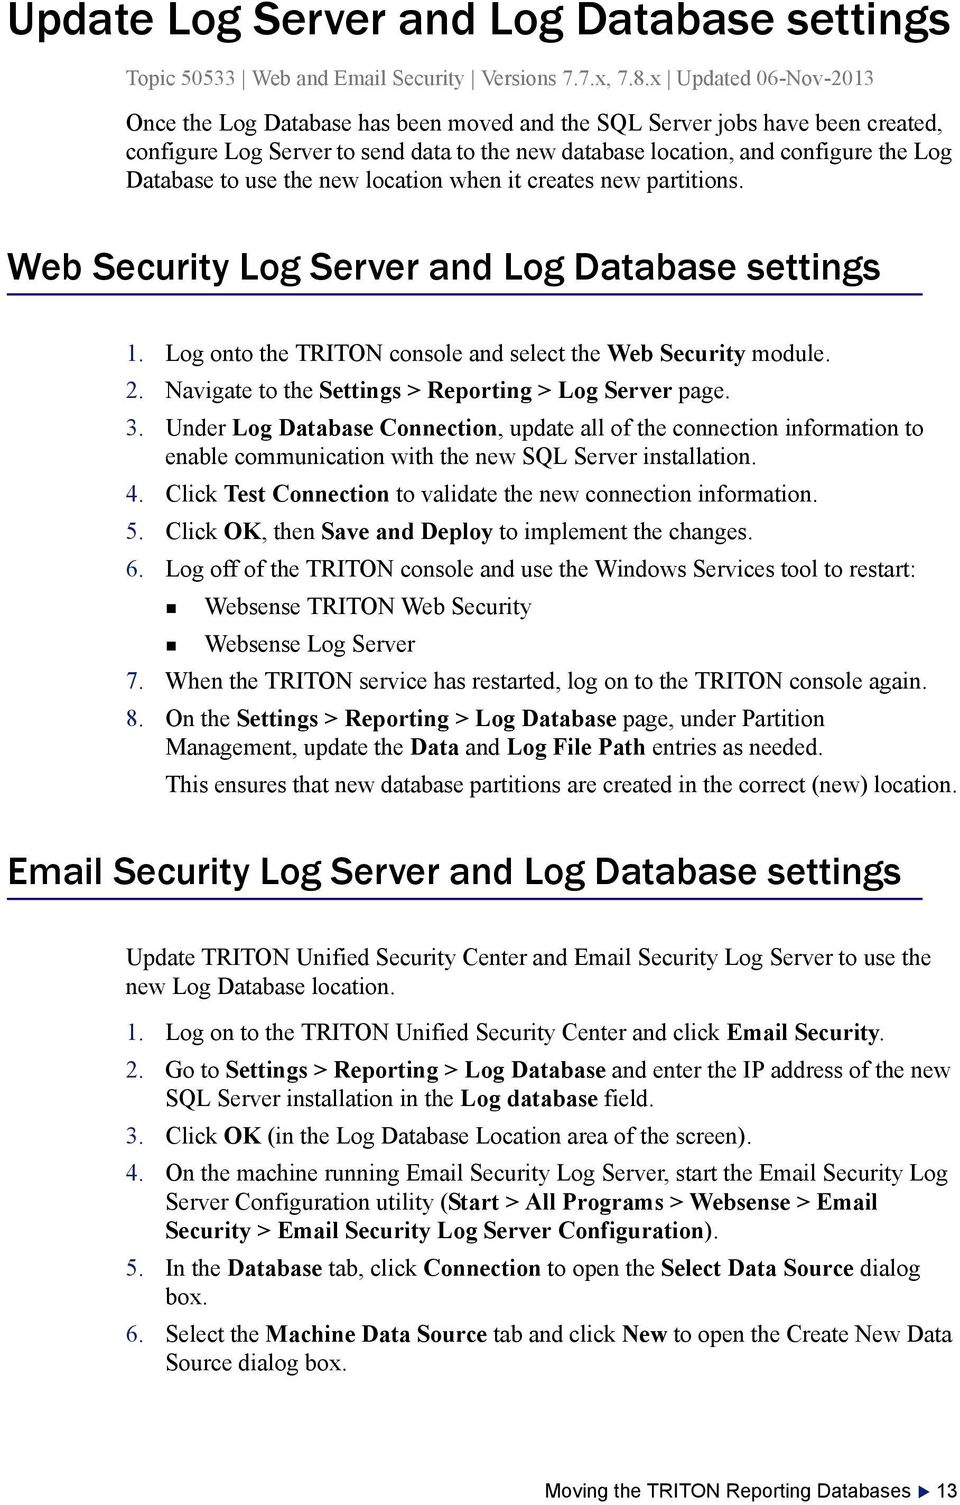 use the new location when it creates new partitions. Web Security Log Server and Log Database settings 1. Log onto the TRITON console and select the Web Security module. 2.